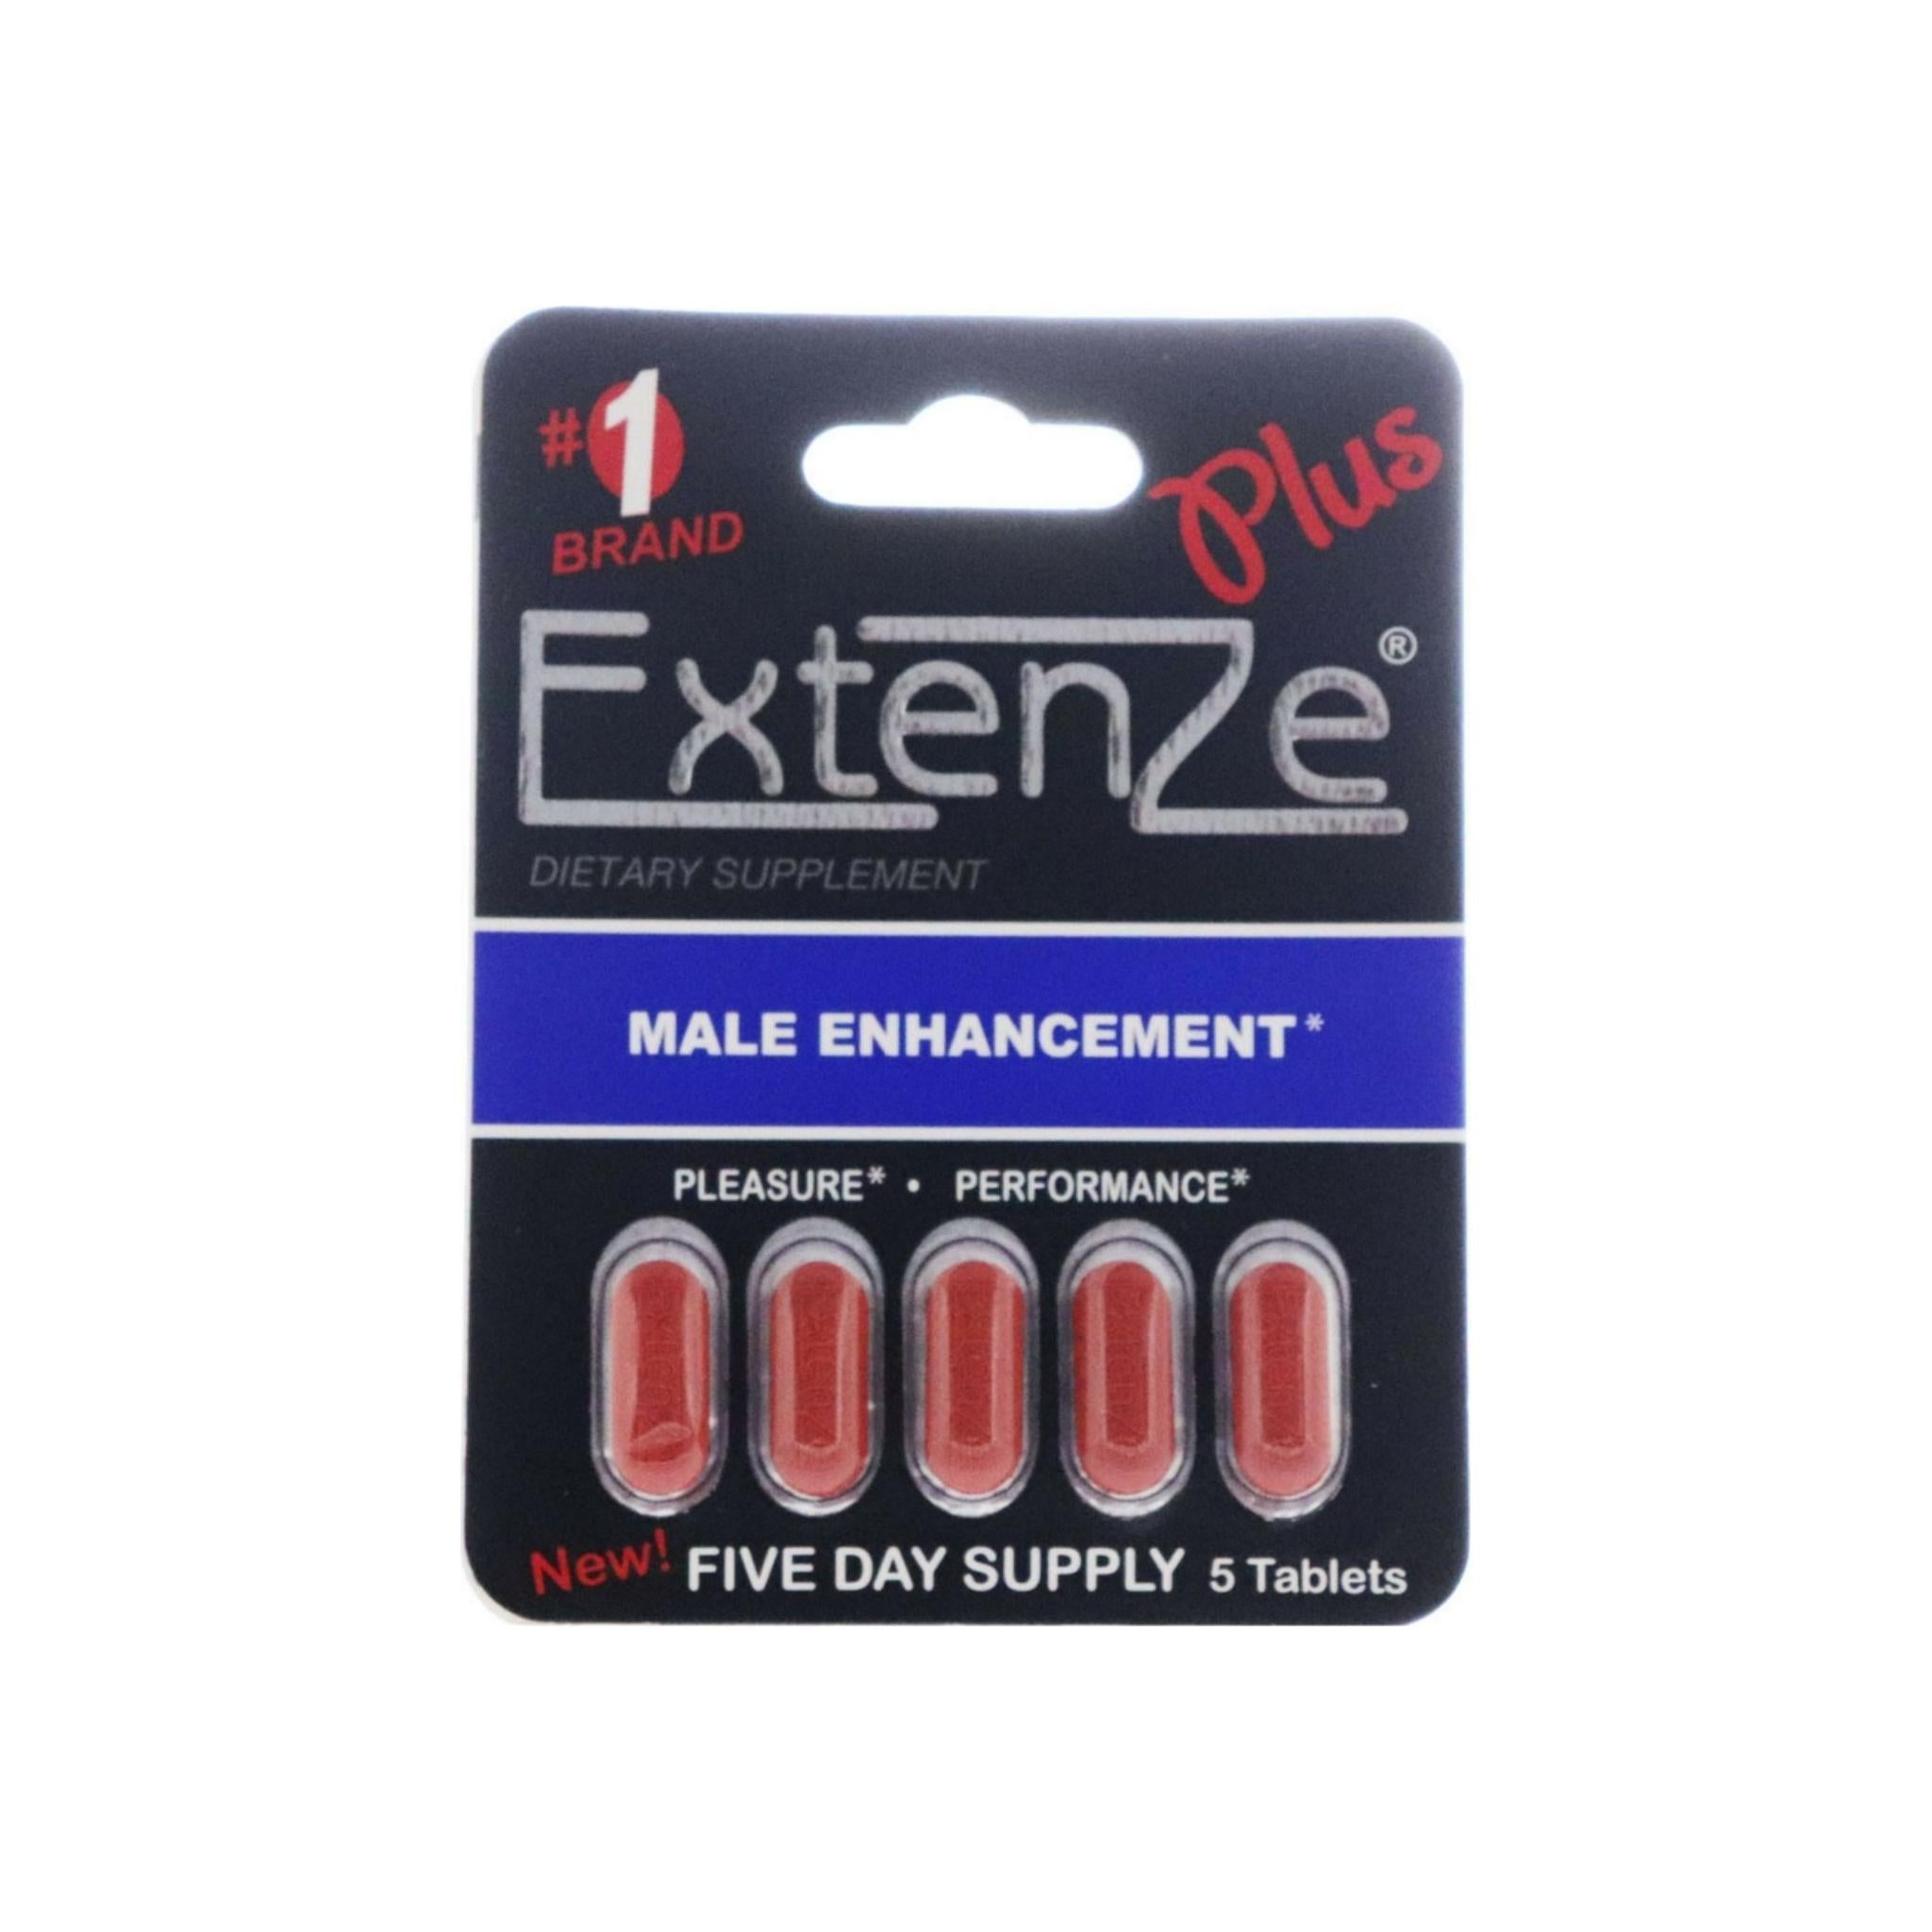 Extenze Male Enhancement Pills  off lease coupon code 2020